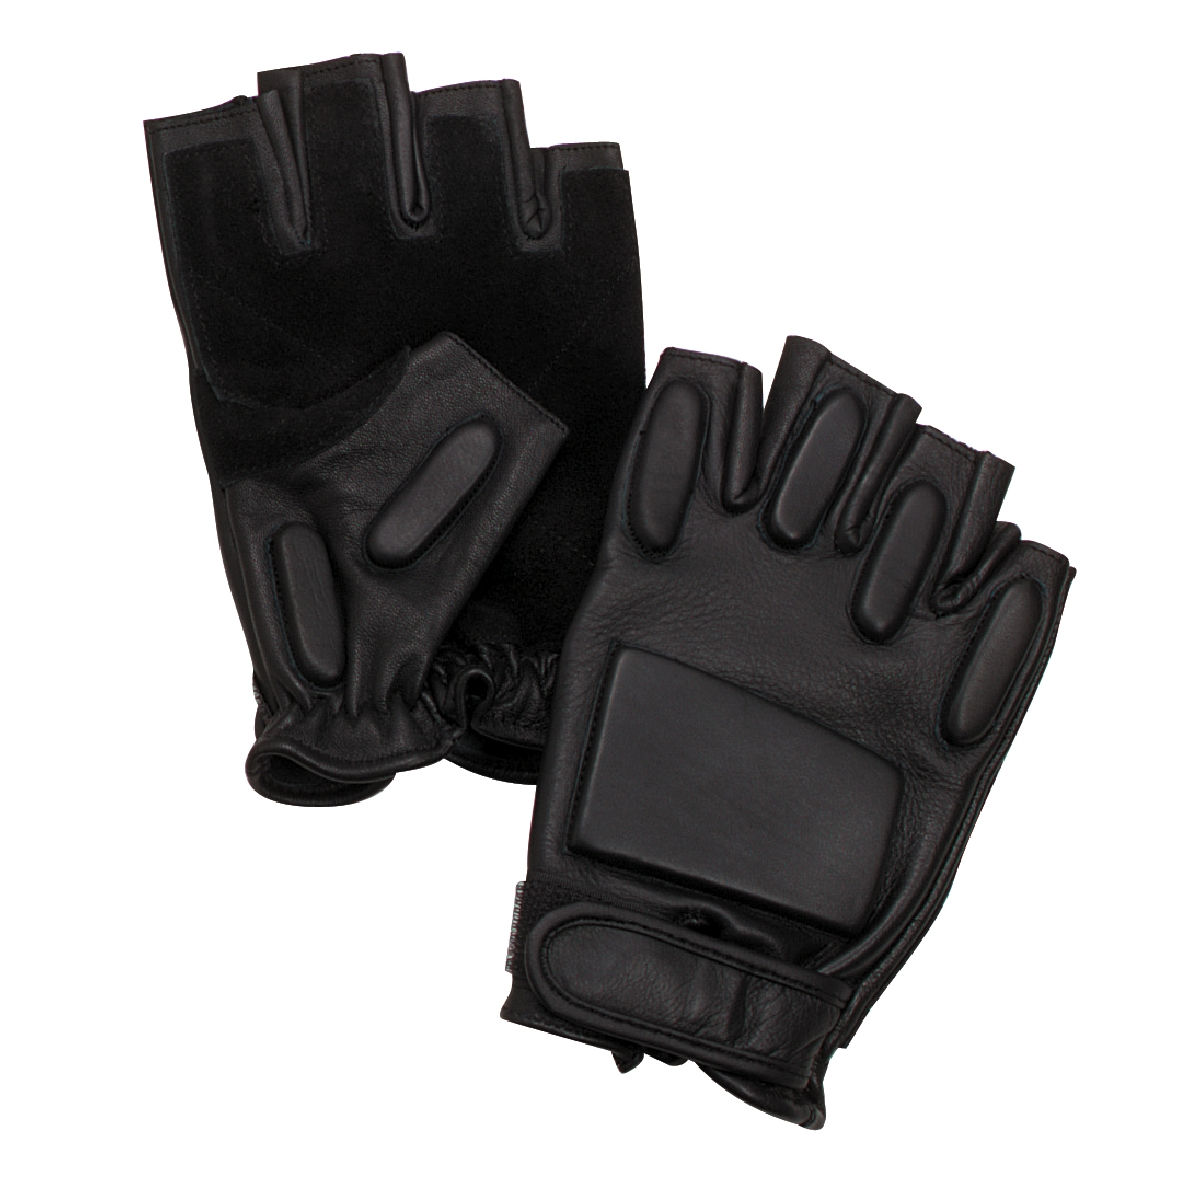 Black Fingerless Tactical Rappelling Gloves